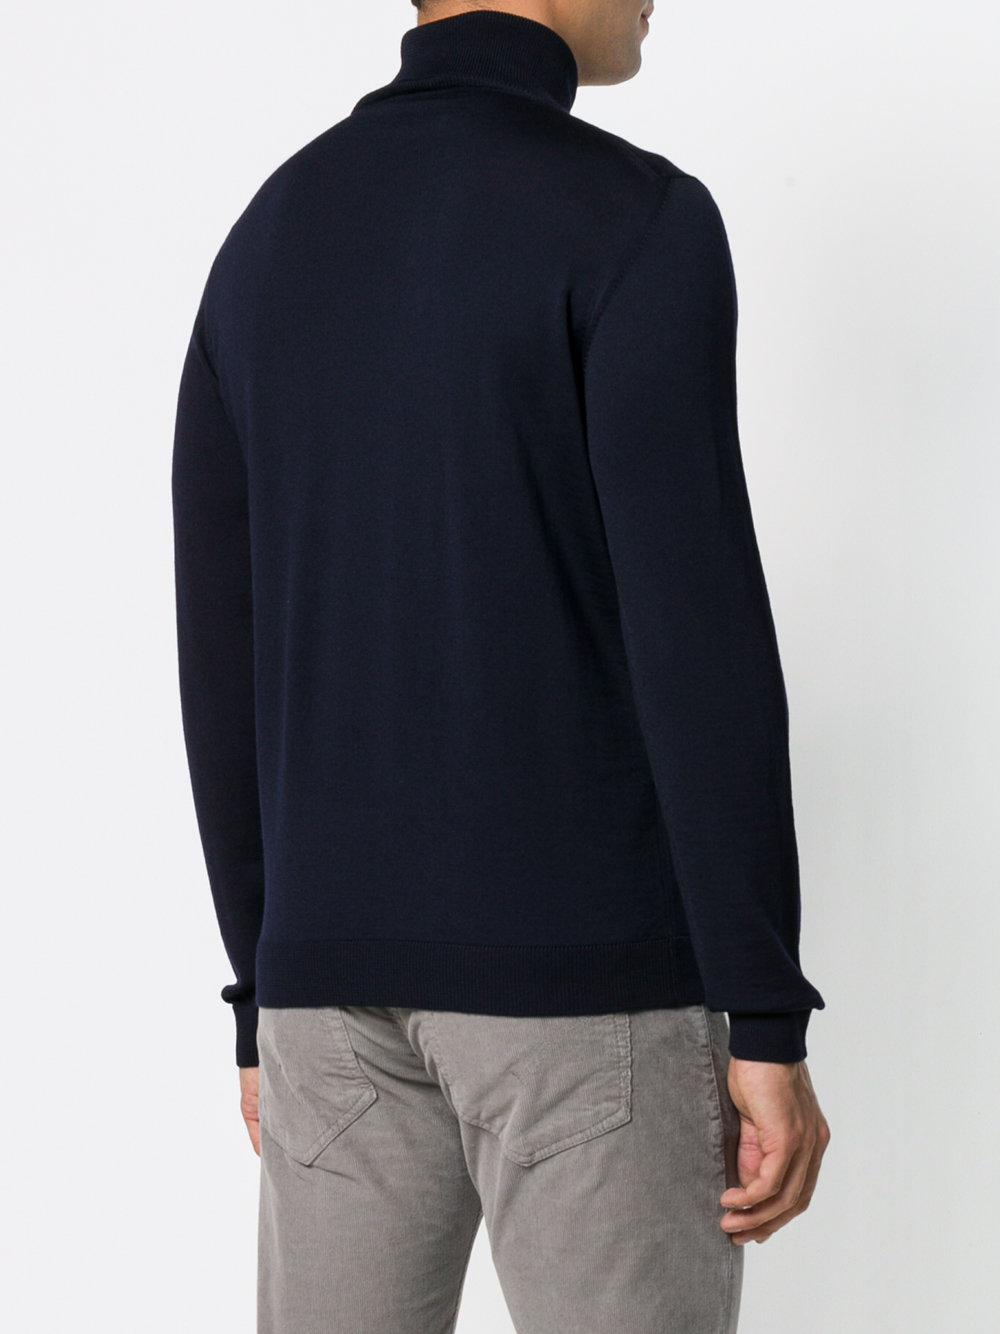 Roberto Collina Wool Roll-neck Fitted Sweater in Blue for Men